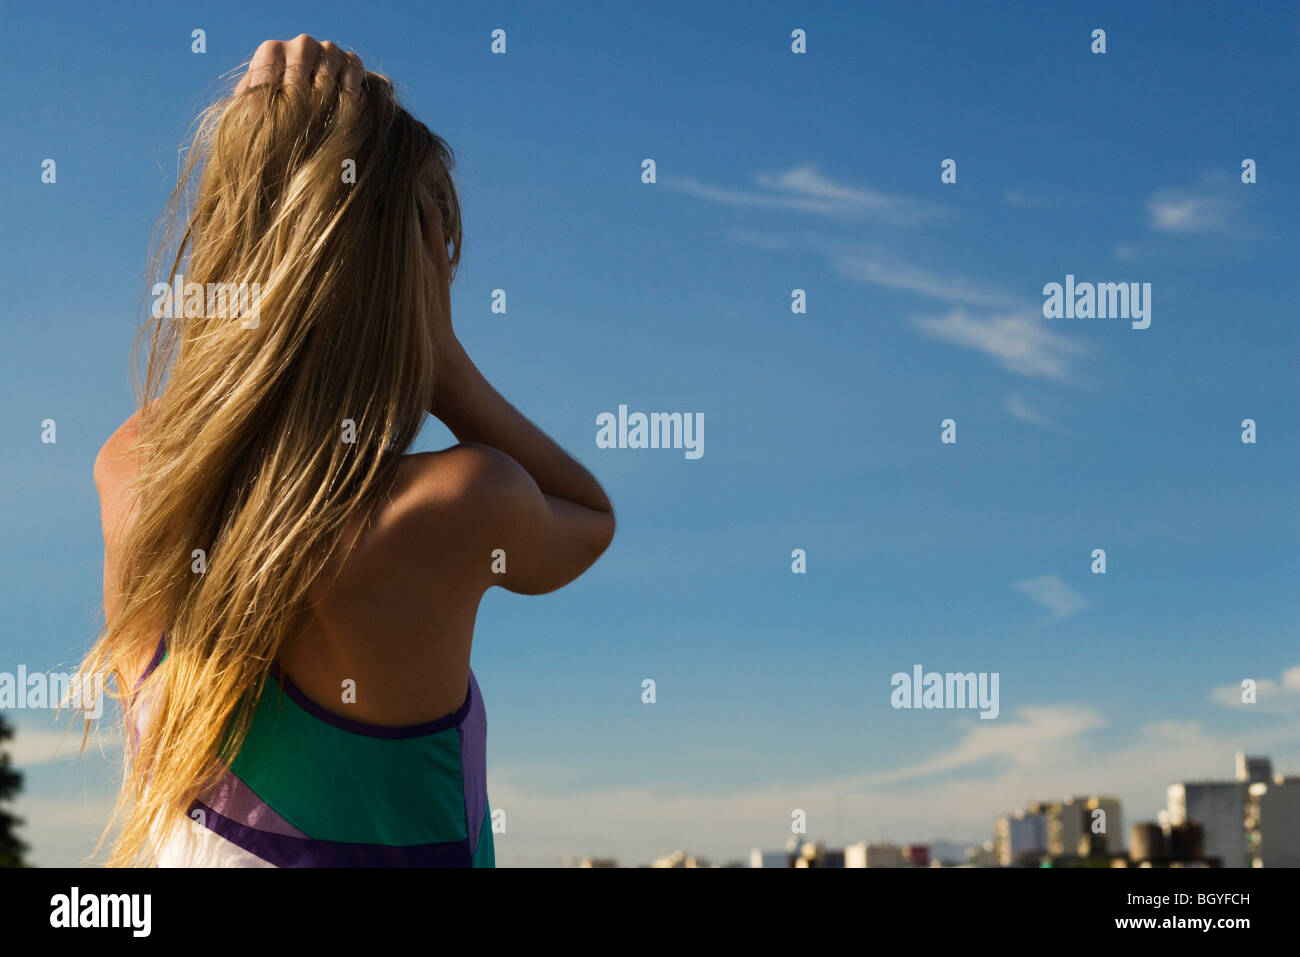 Female standing with hands in hair, looking at city in distance - Stock Image